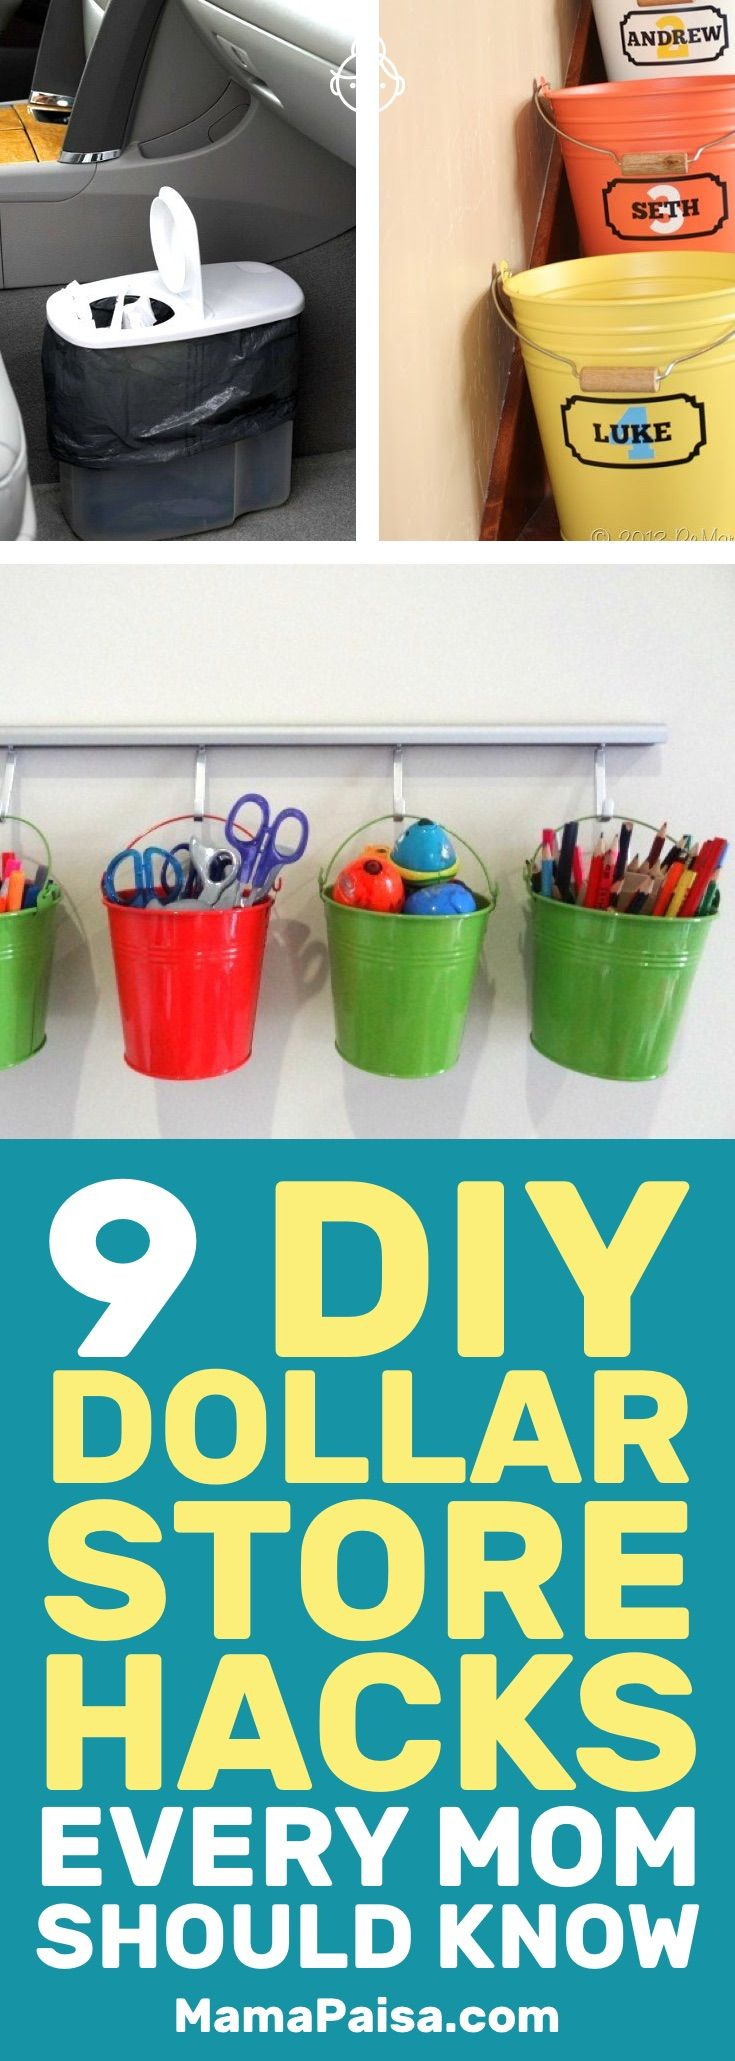 Dollar Store hacks can make your life a lot easier on a budget. These DIY Dollar Store hacks are great mom hacks.